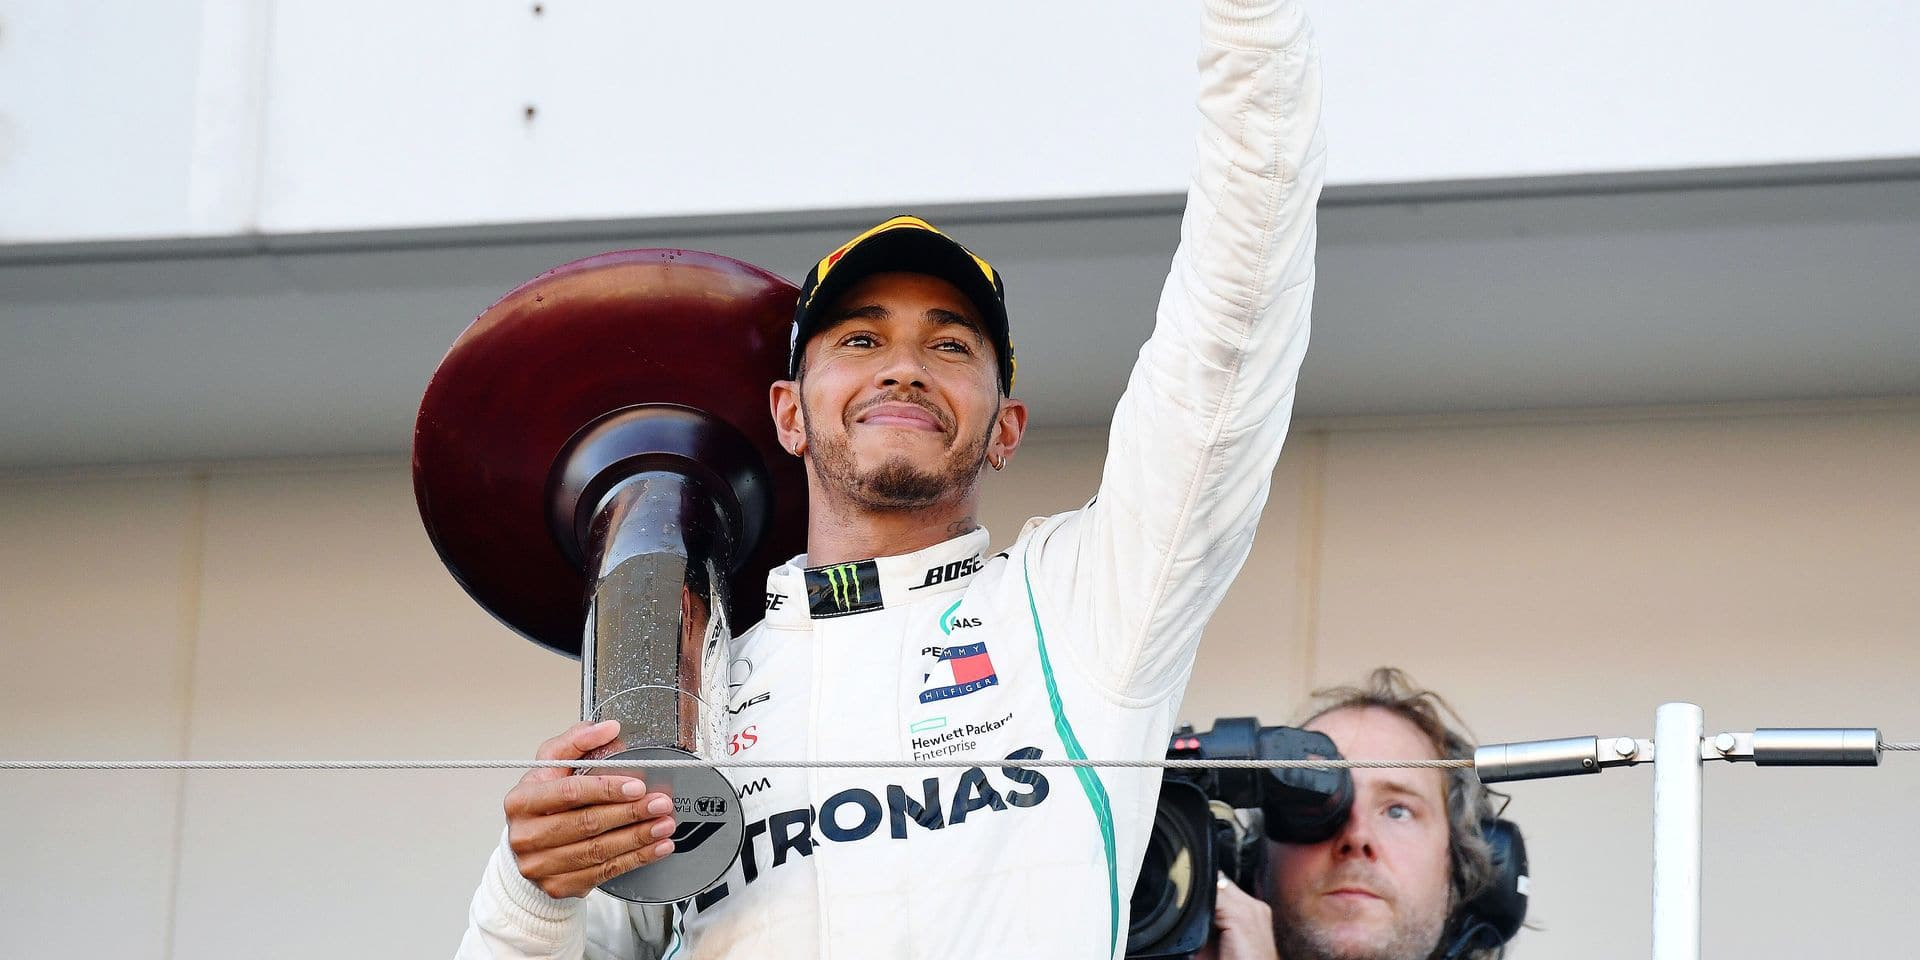 Mercedes' British driver Lewis Hamilton celebrates on the podium after his victory in the Formula One Japanese Grand Prix at Suzuka on October 7, 2018. (Photo by Toshifumi KITAMURA / AFP)